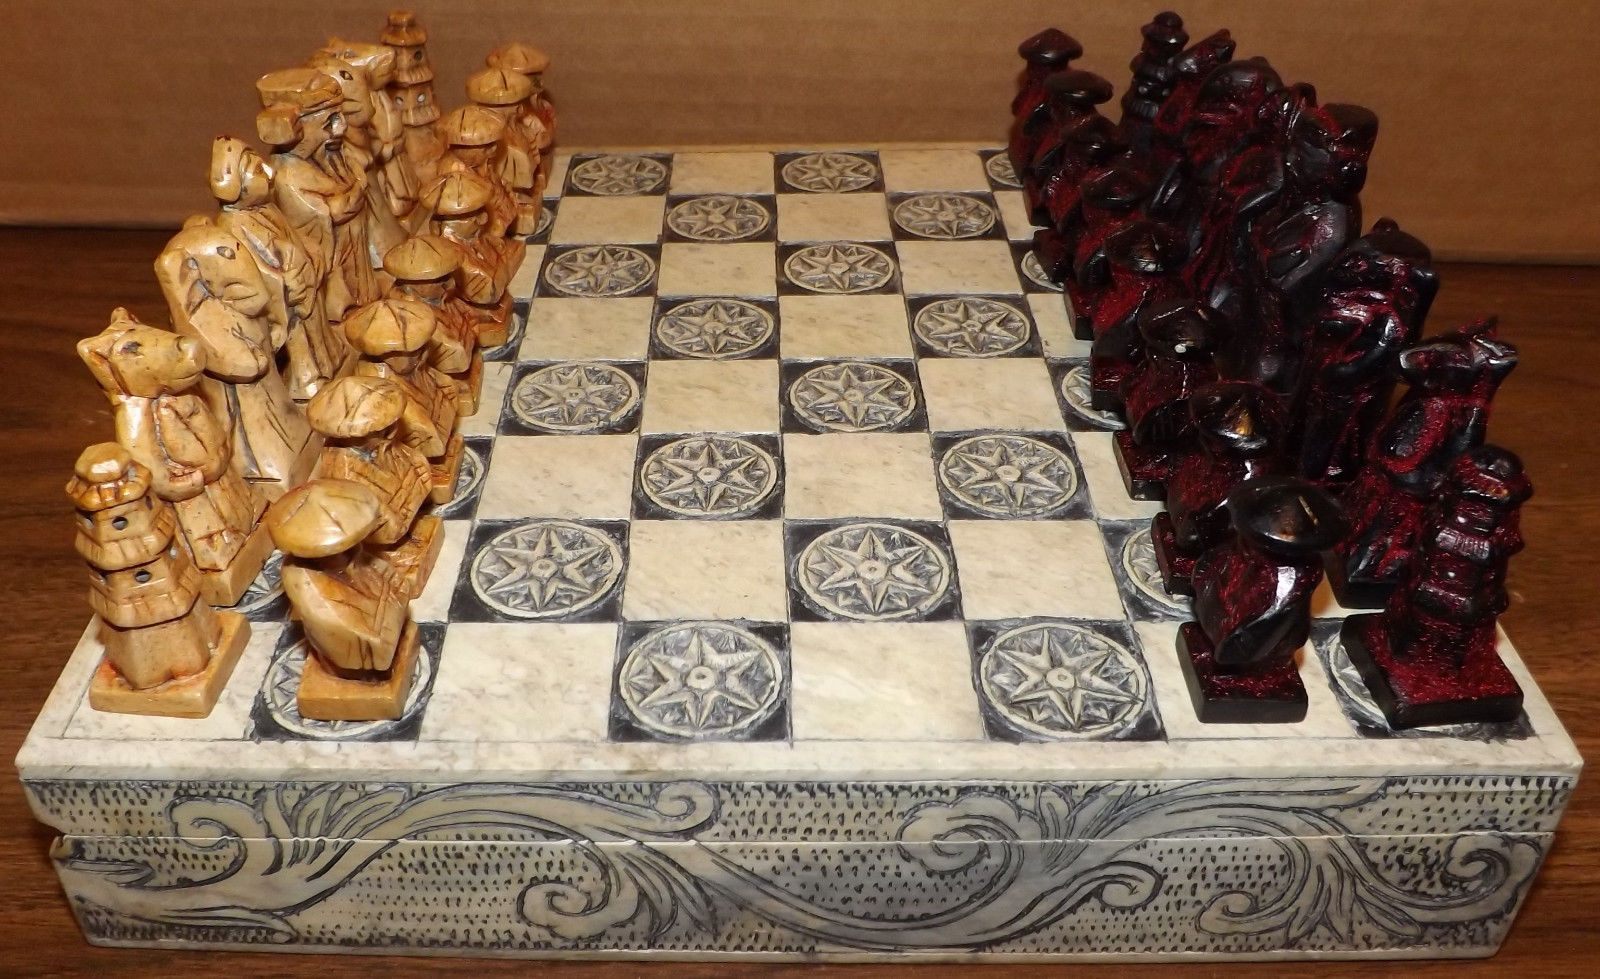 Vintage 1970s chess set ornate stone hand carved pieces asian oriental design oriental design - Ornate chess sets ...